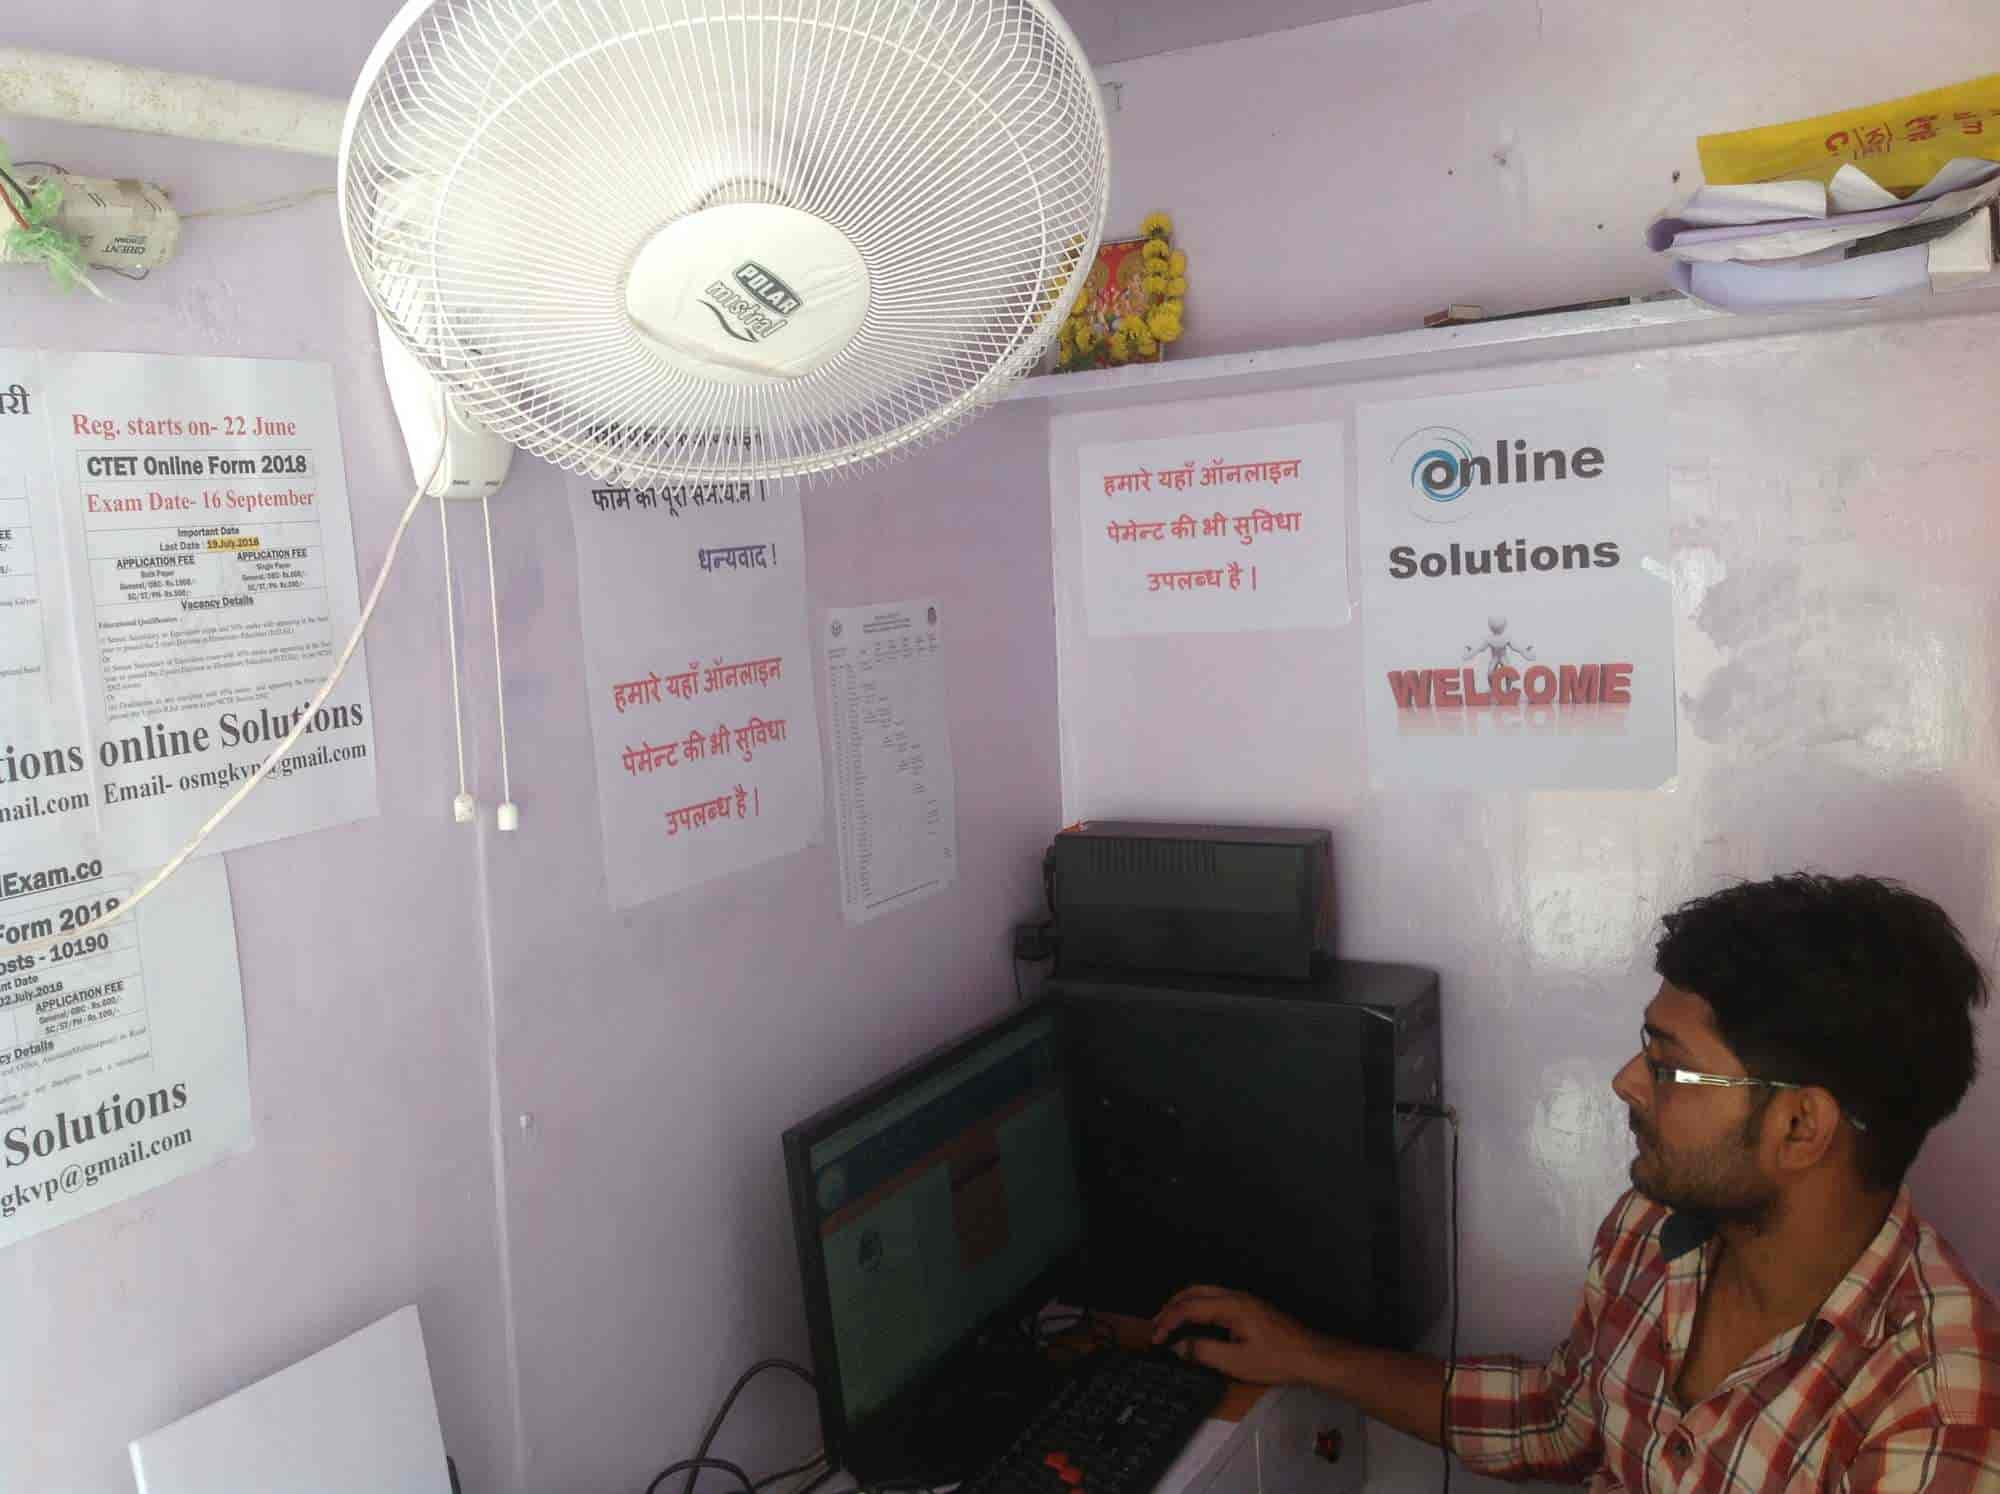 Online Solutions Photos, Cantt, Varanasi- Pictures & Images Gallery